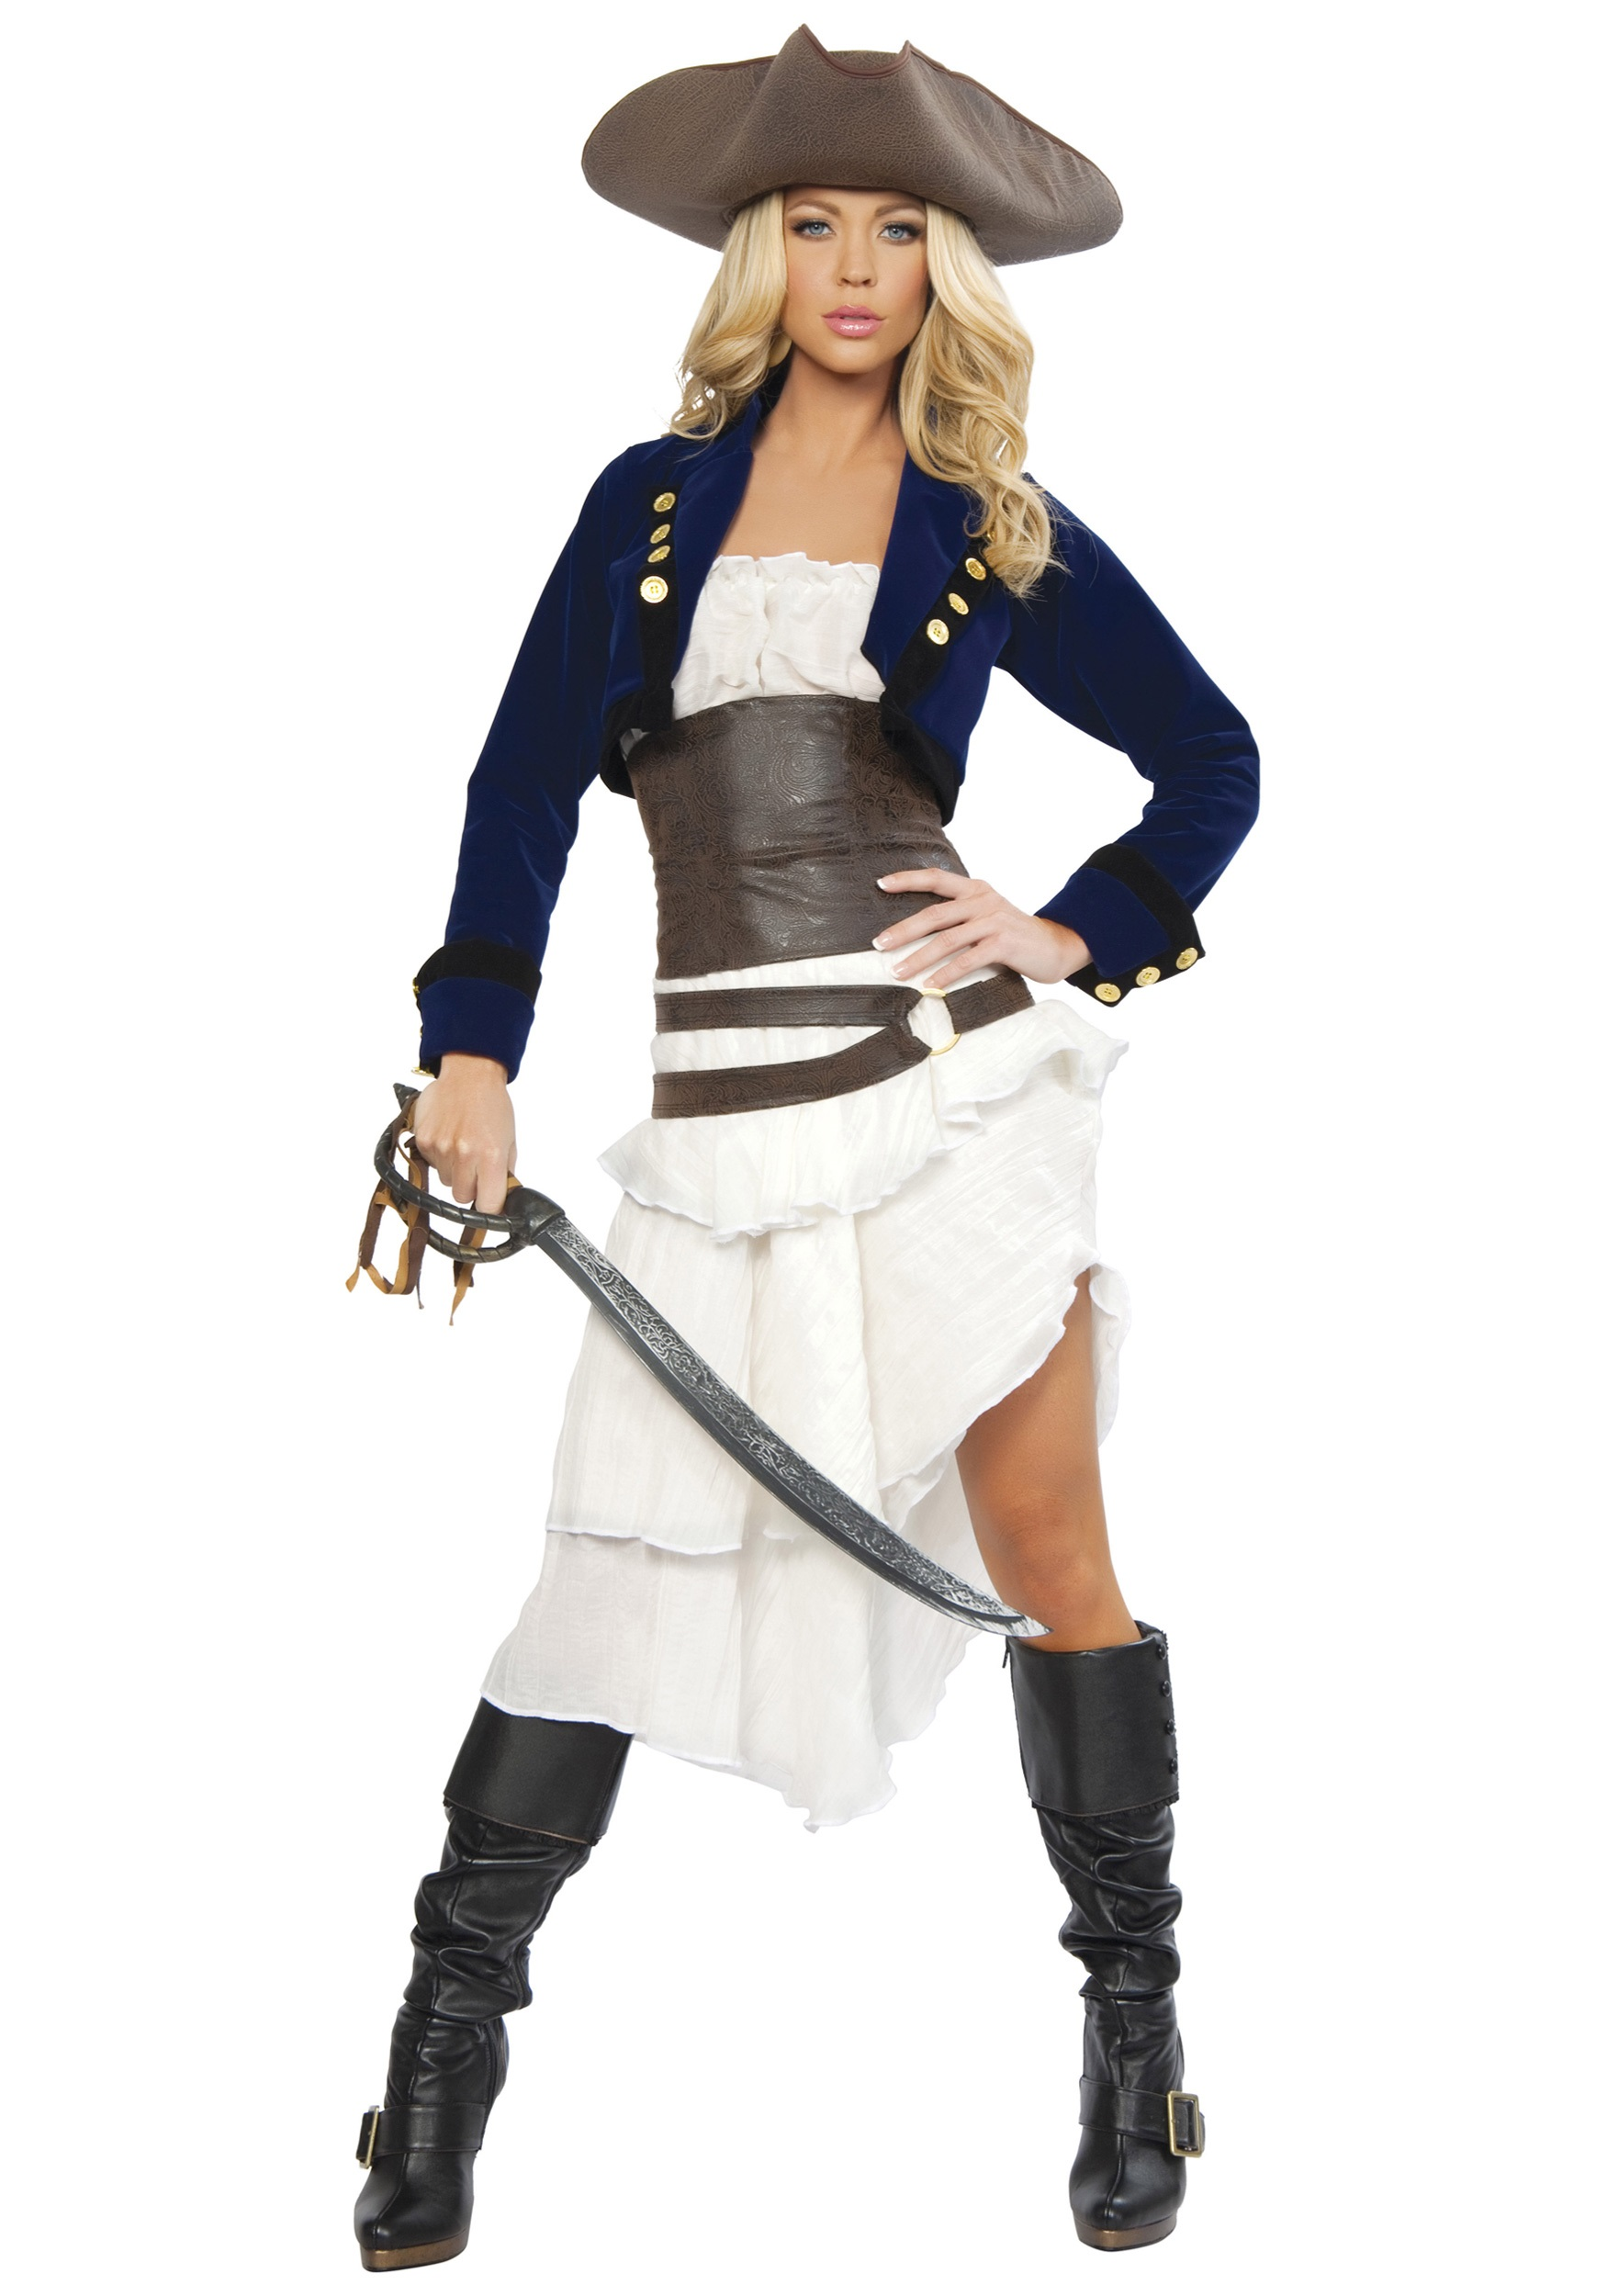 Cool Tiered Jacket Included Pirate Womens Gypsy Fantasia Fancy party dress Halloween costumes on Aliexpress.com | Alibaba Group  sc 1 st  AliExpress.com & Cool Tiered Jacket Included Pirate Womens Gypsy Fantasia Fancy party ...